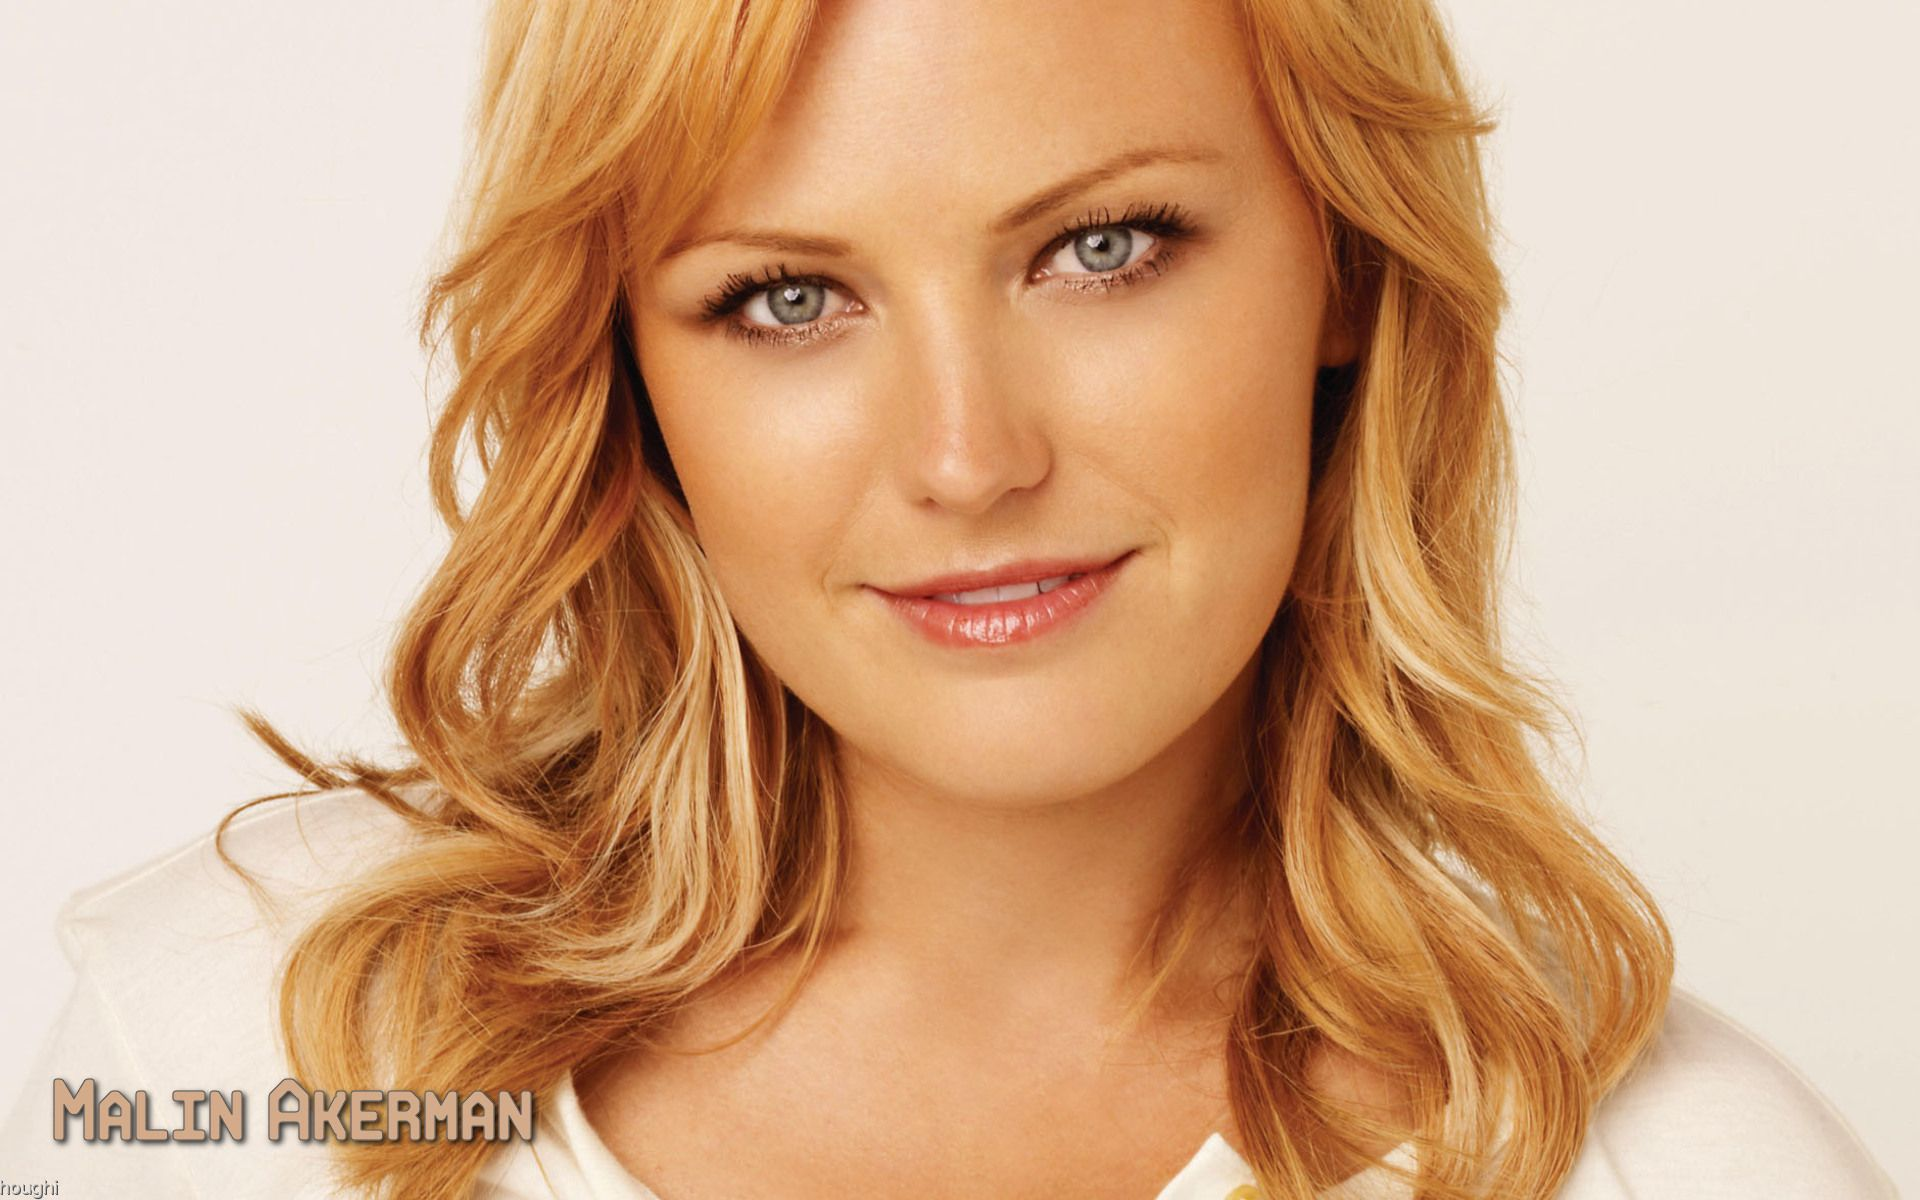 Malin Akerman's quote #5